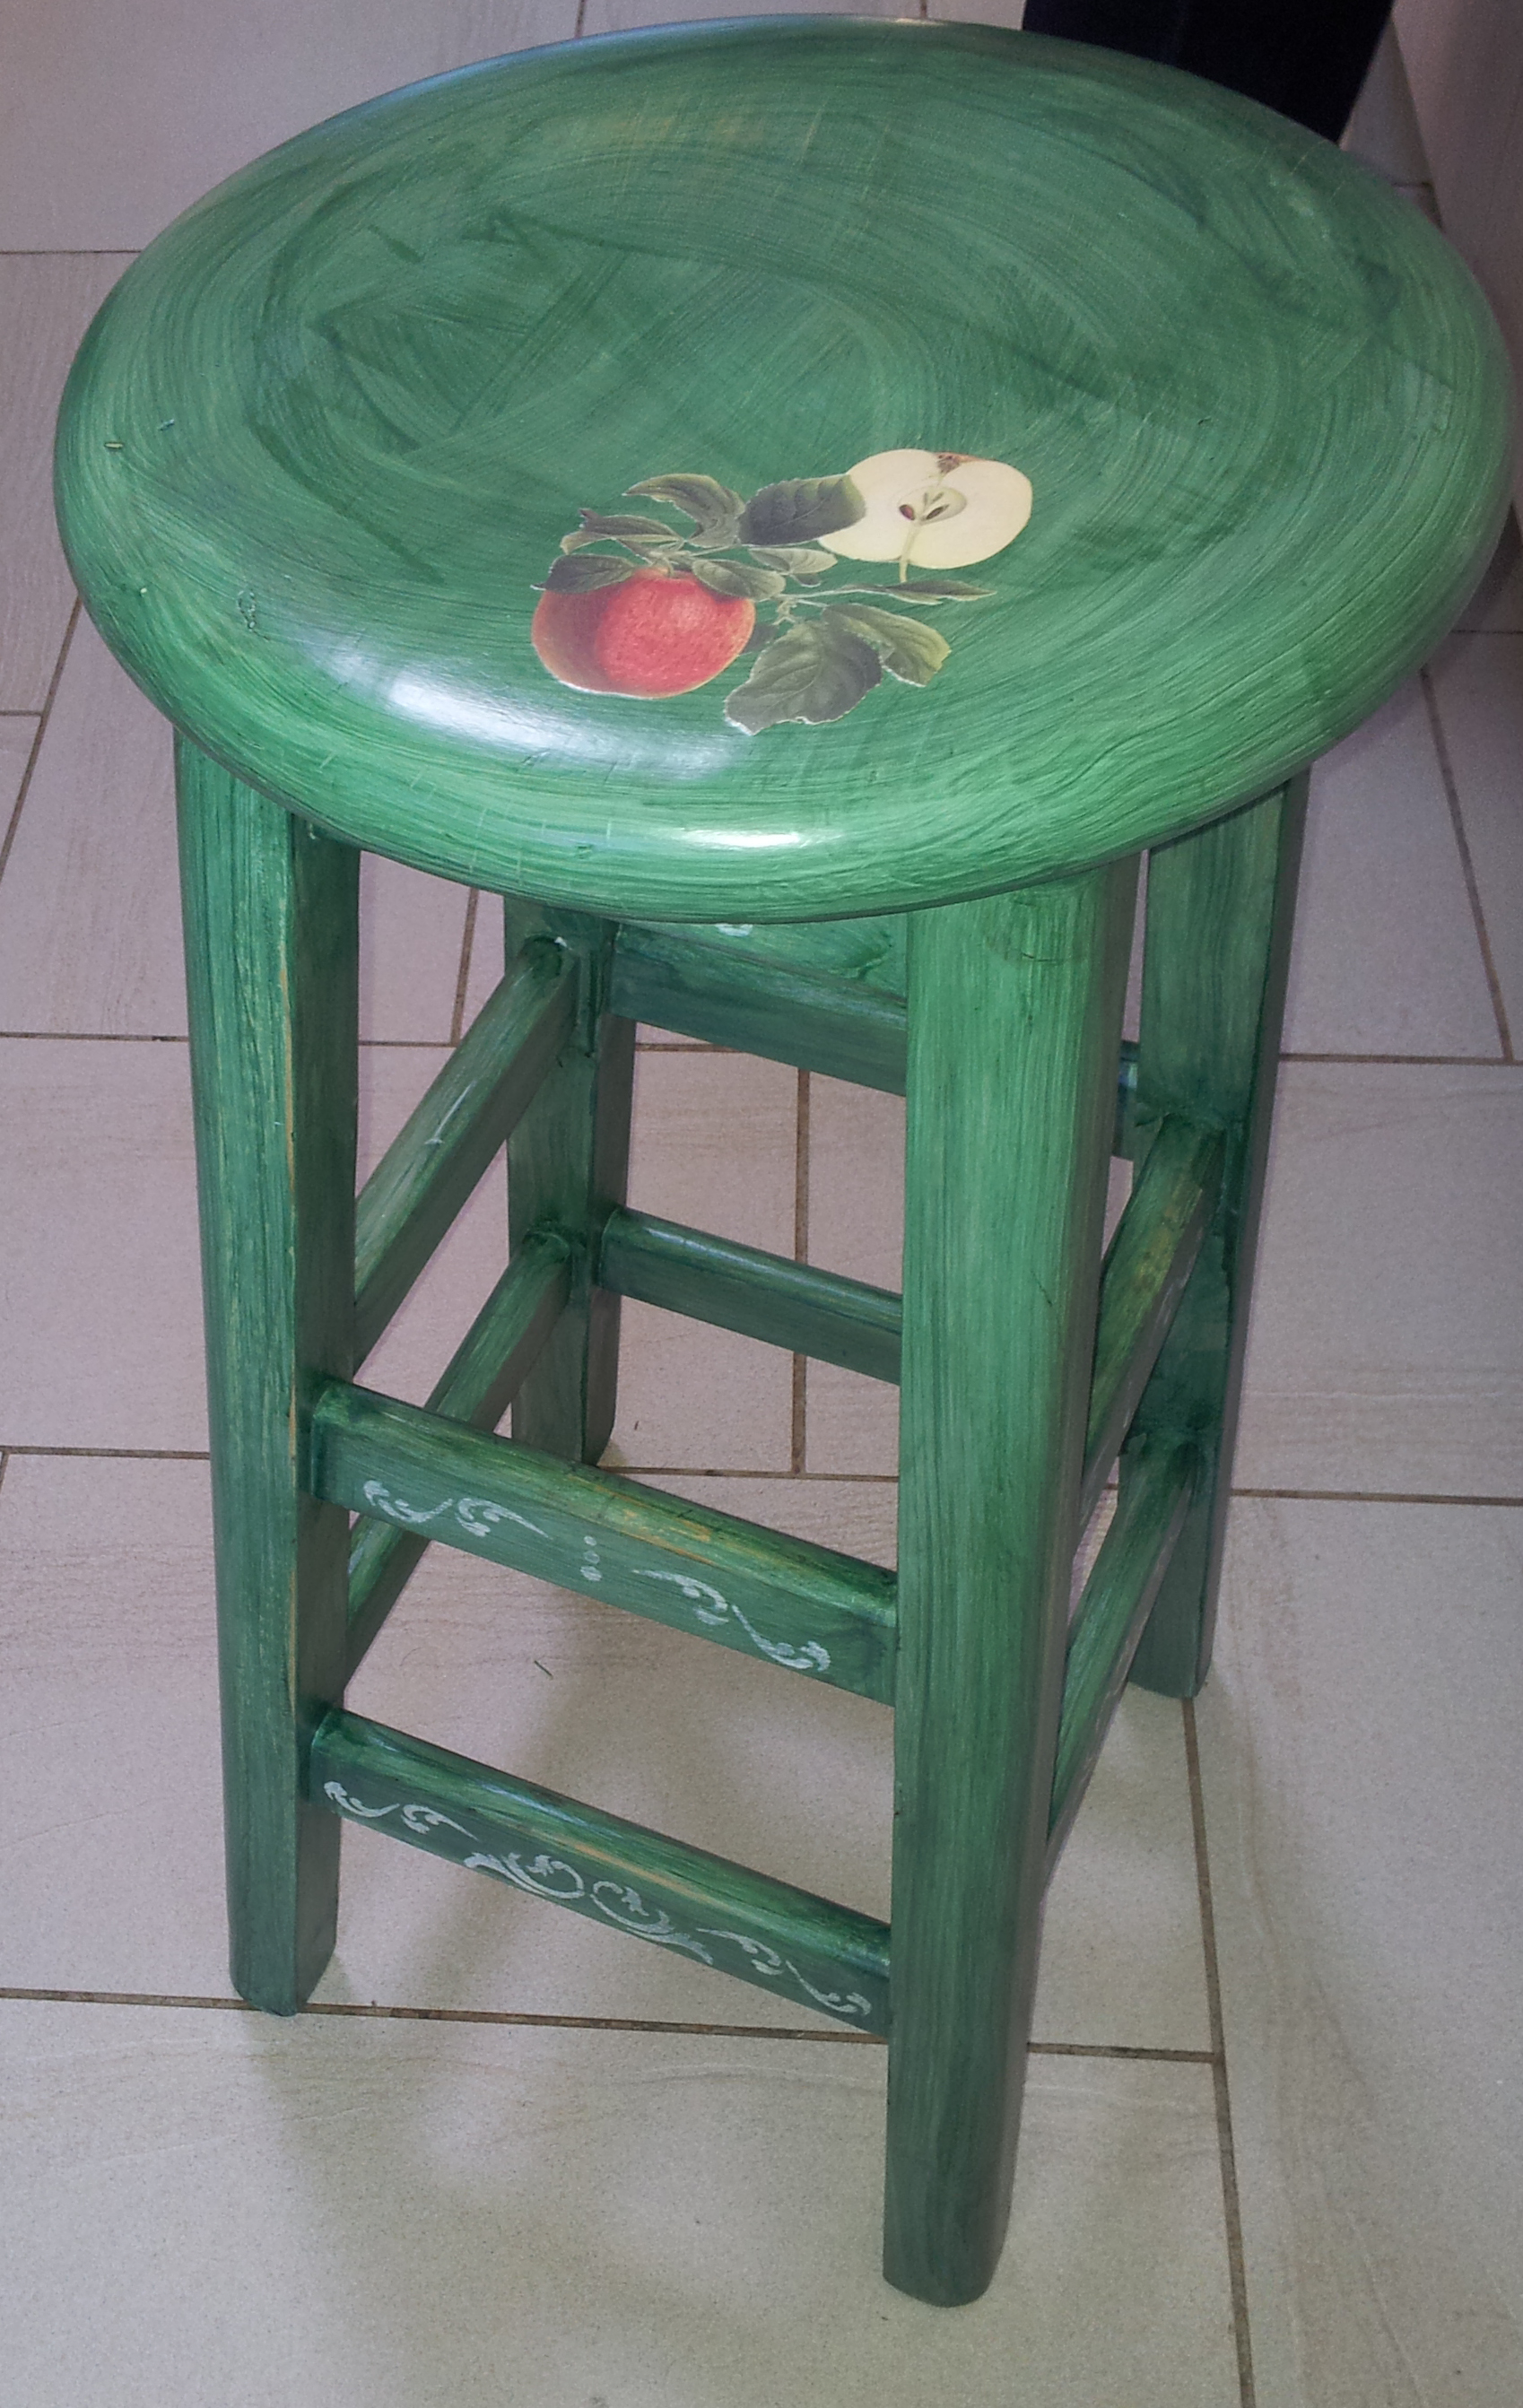 Green Apple Decorations For Kitchen Apple Decorations For Kitchen Kitchen Ideas